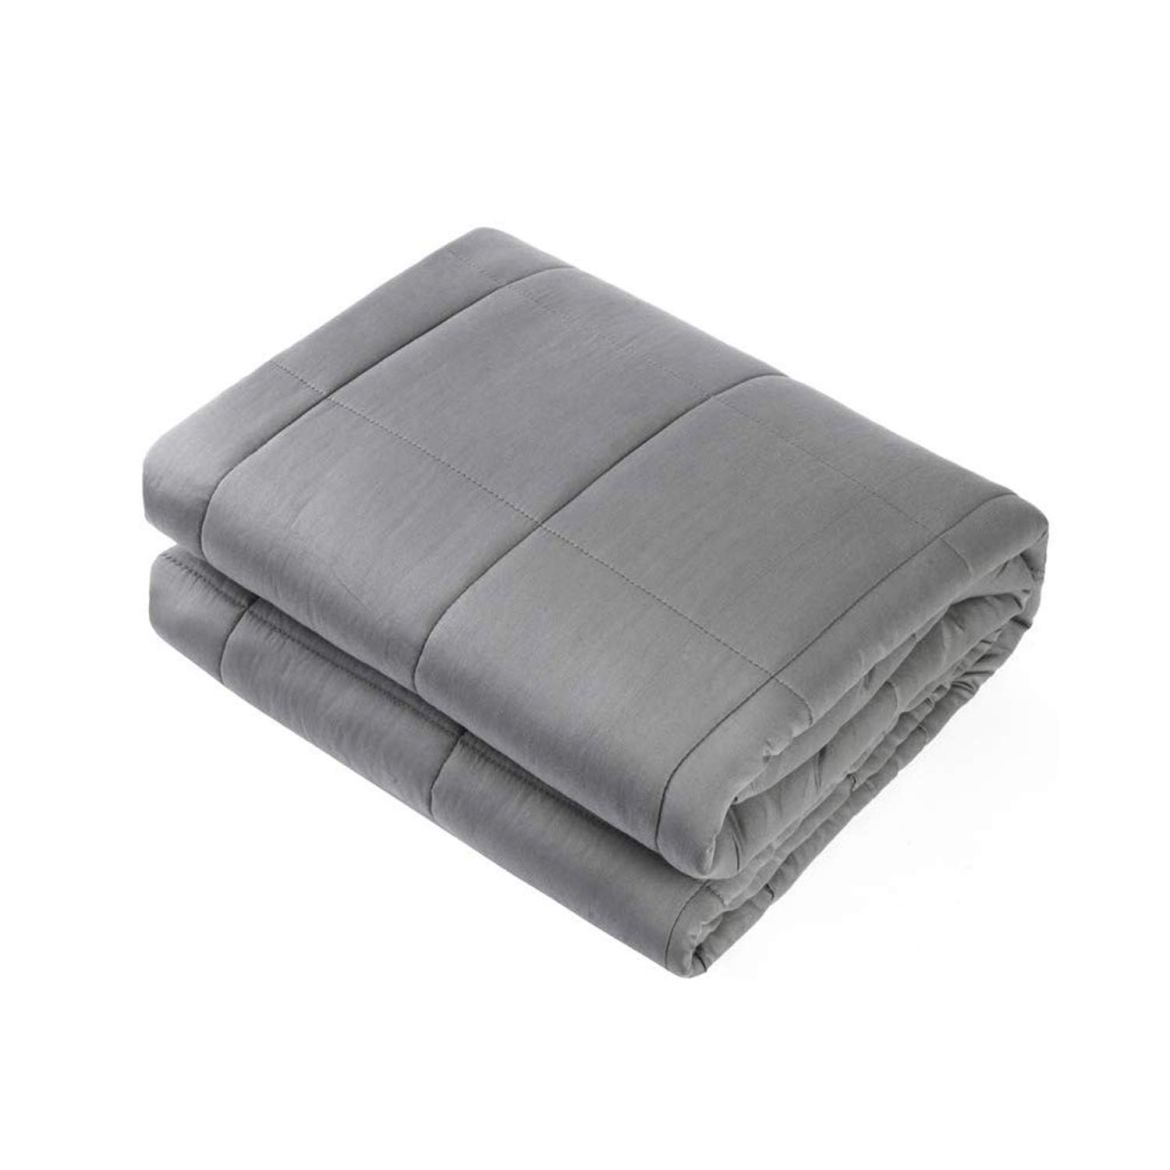 Adult Weighted Blanket Queen Size(15lbs 60'x80') Heavy Blanket with Premium Glass Beads, (Dark Grey) Waowoo